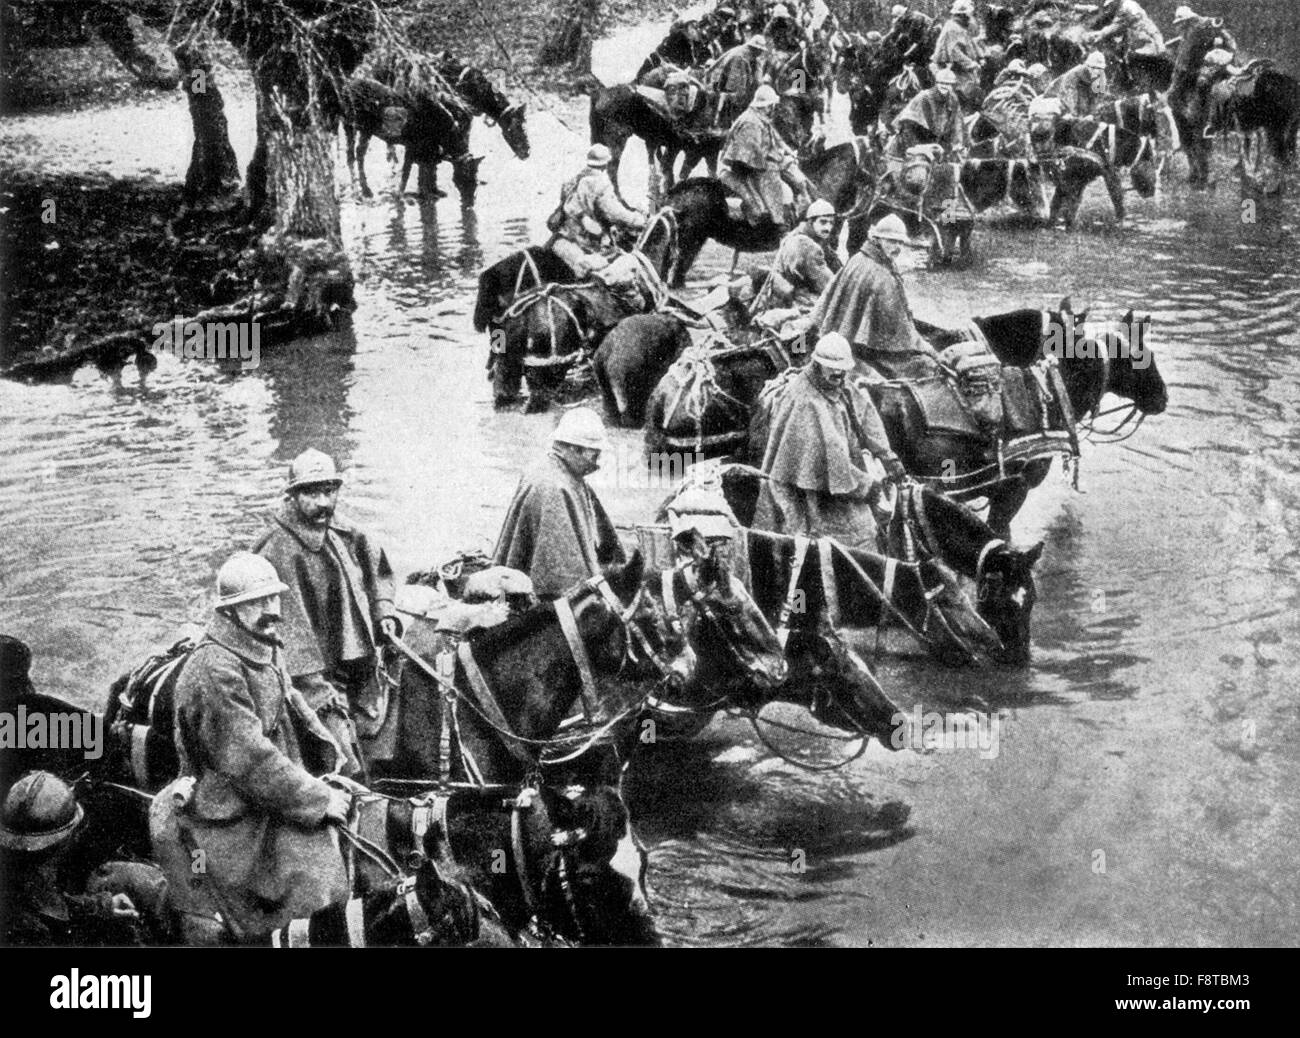 French train horses resting in a river on their way to Verdun - Stock Image